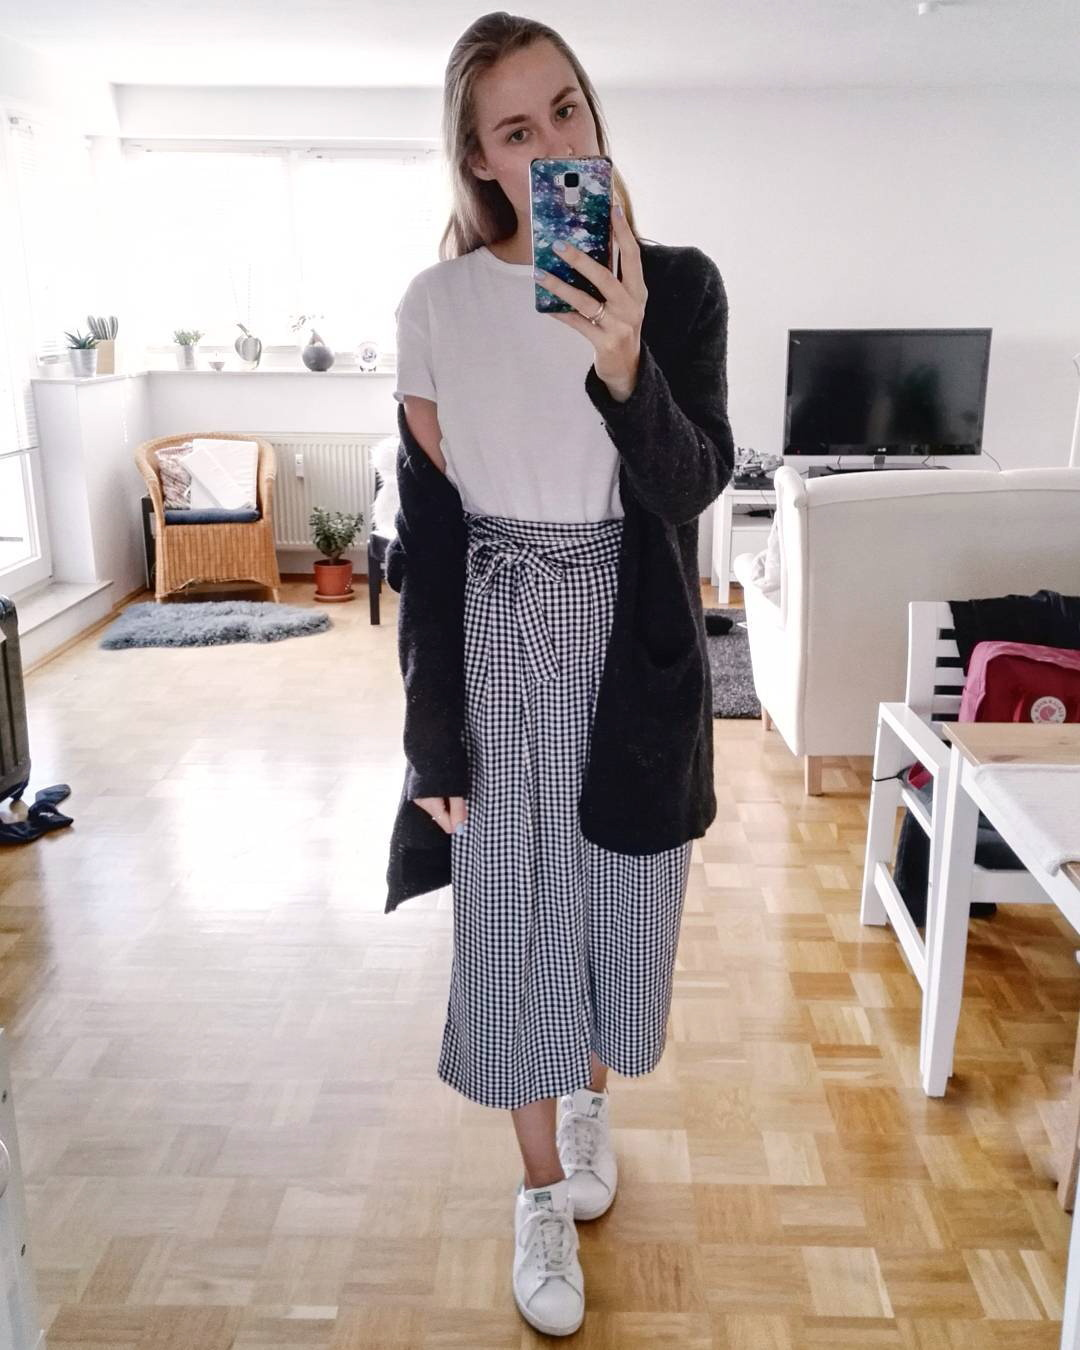 Elegant White Top With Black & White Checkered Crop Pant And Light Weight Jacket